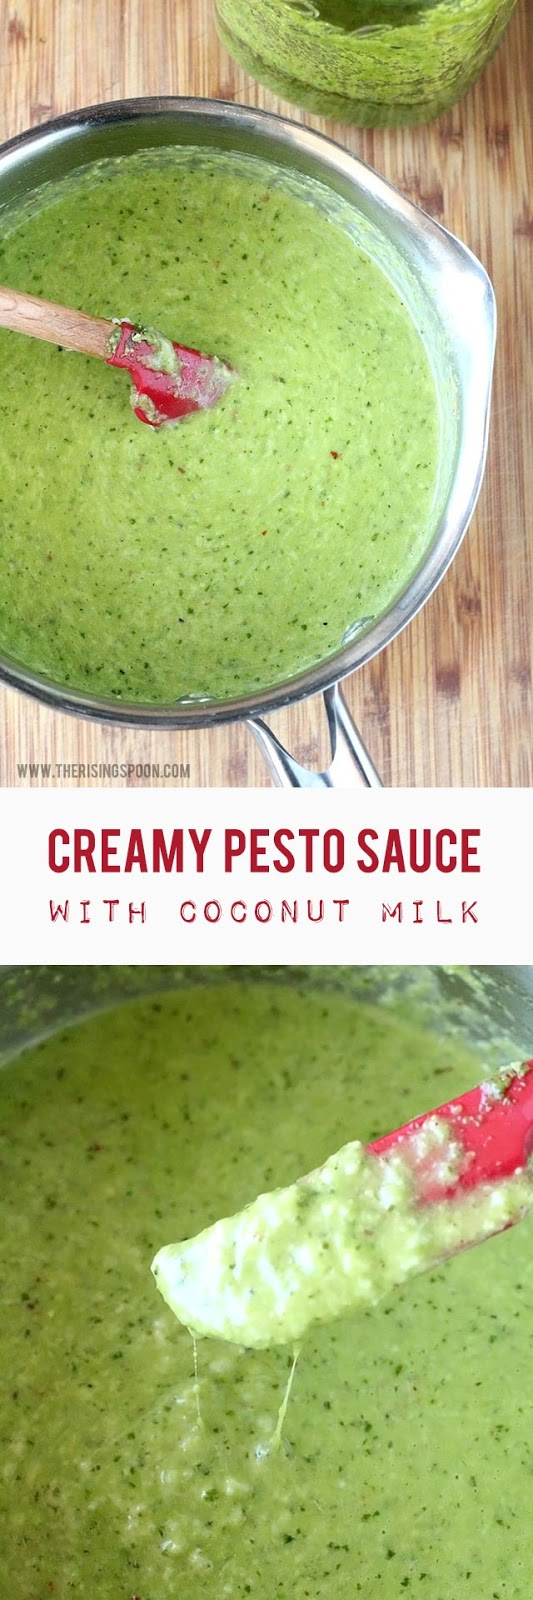 Make your own creamy pesto sauce in minutes with full-fat coconut milk, homemade or jarred pesto, butter, cheese, and seasonings. It's perfect for drizzling on pasta, meats, and veggies, and would even work as a warm dip!